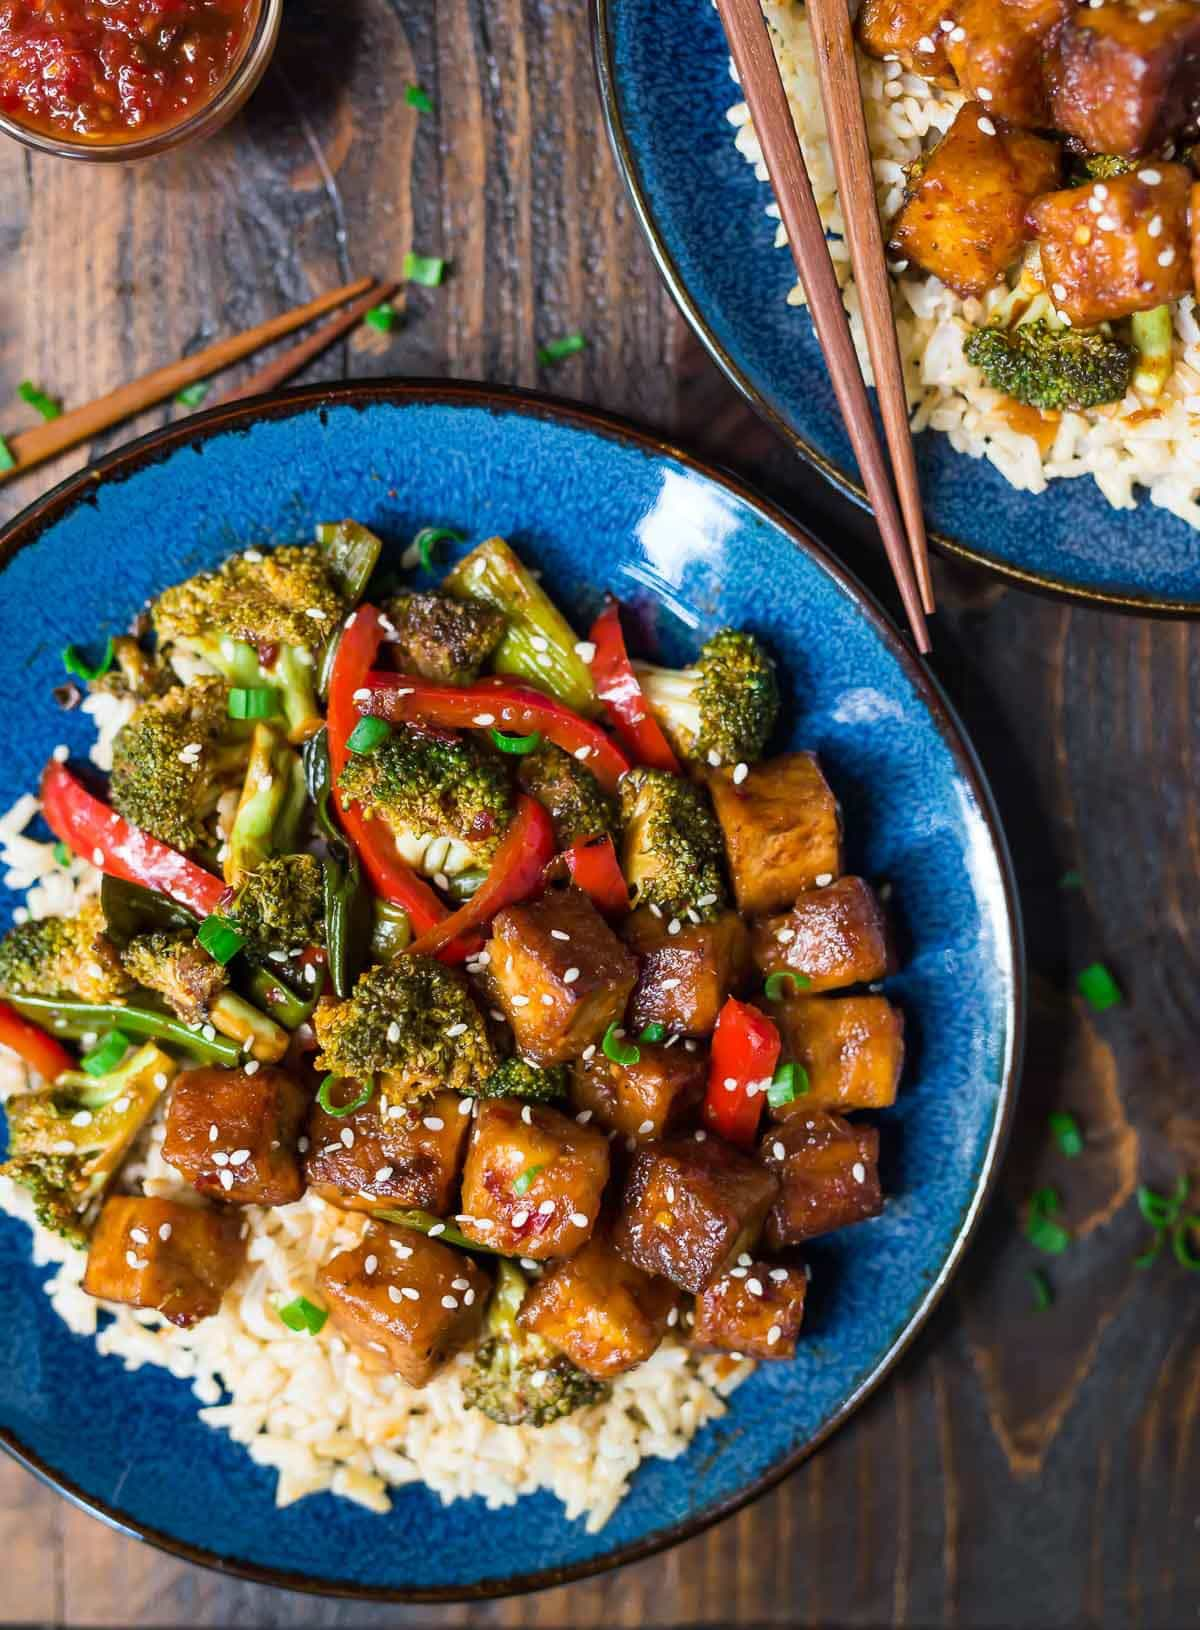 General Tso Tofu. DELICIOUS, easy and healthy! A lighter version of everyone's favorite General Tso's stir fry that's vegan, gluten free, and cooks in just one pan!